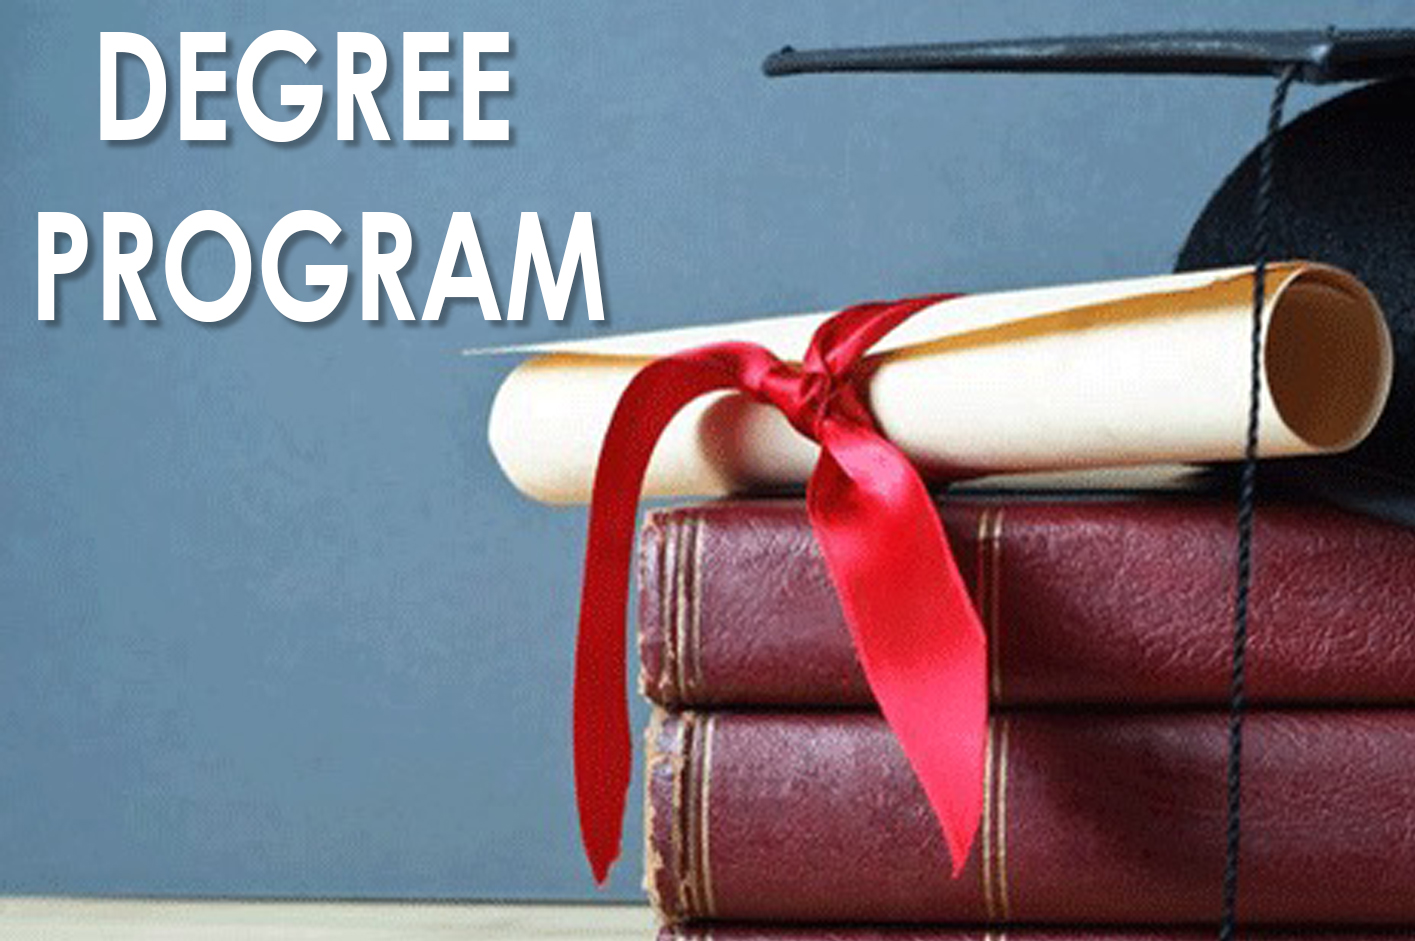 Learn More About The Degree Program